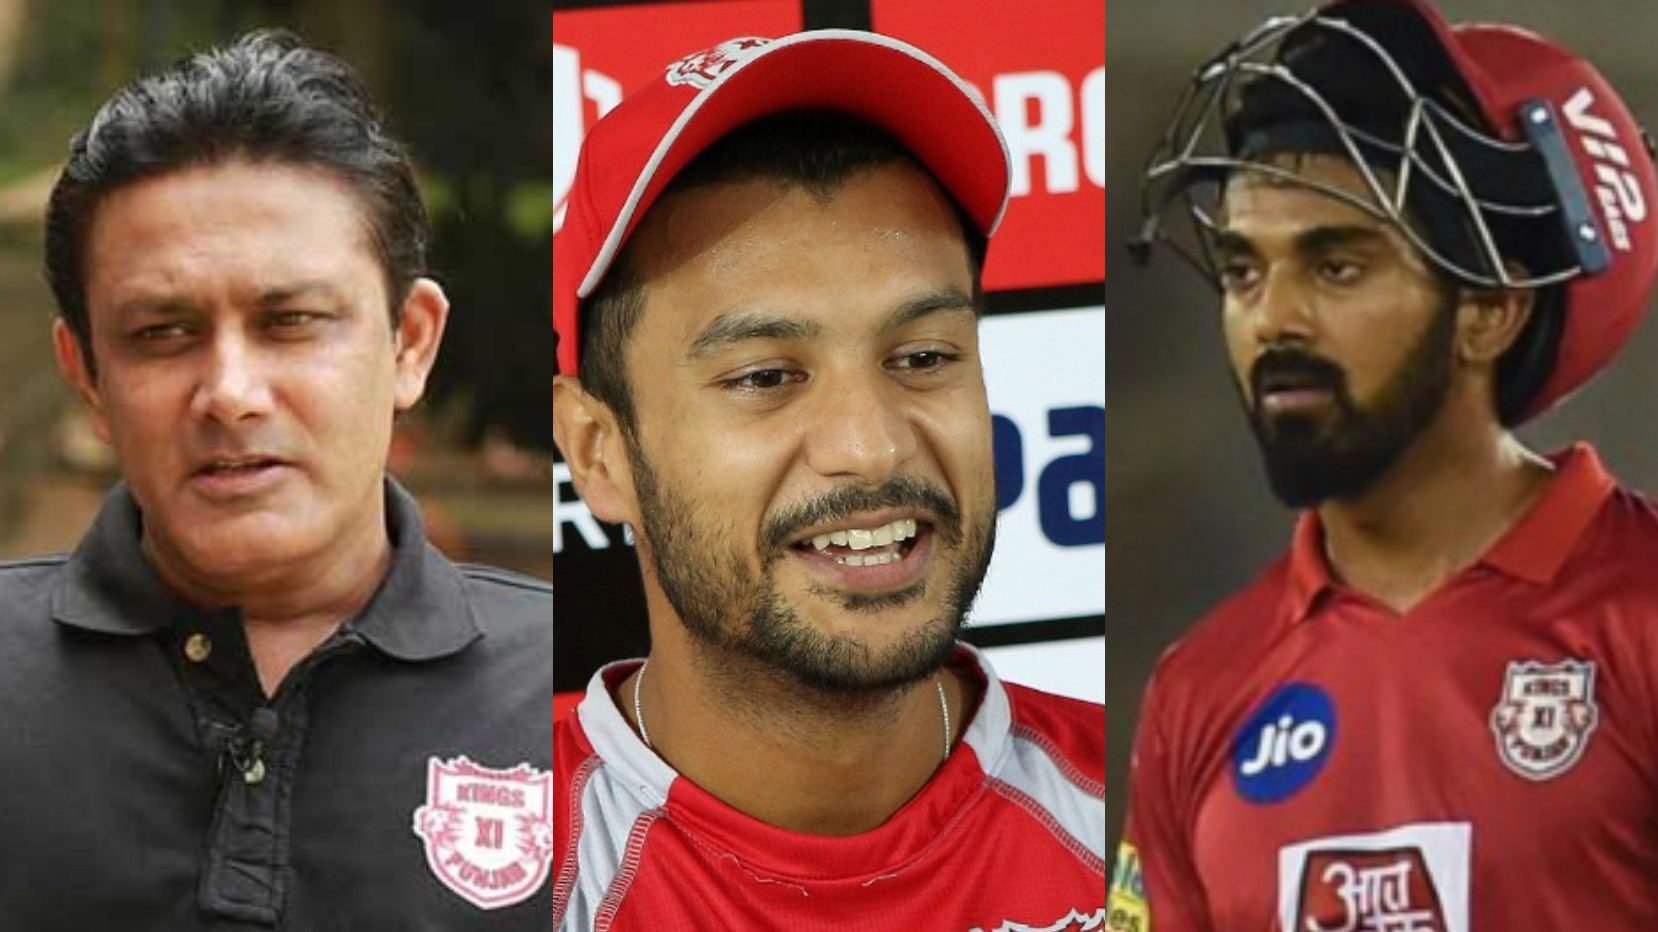 IPL 2021: Competition pumps me up, says Mayank Agarwal; opines on roles of Kumble and Rahul in PBKS setup